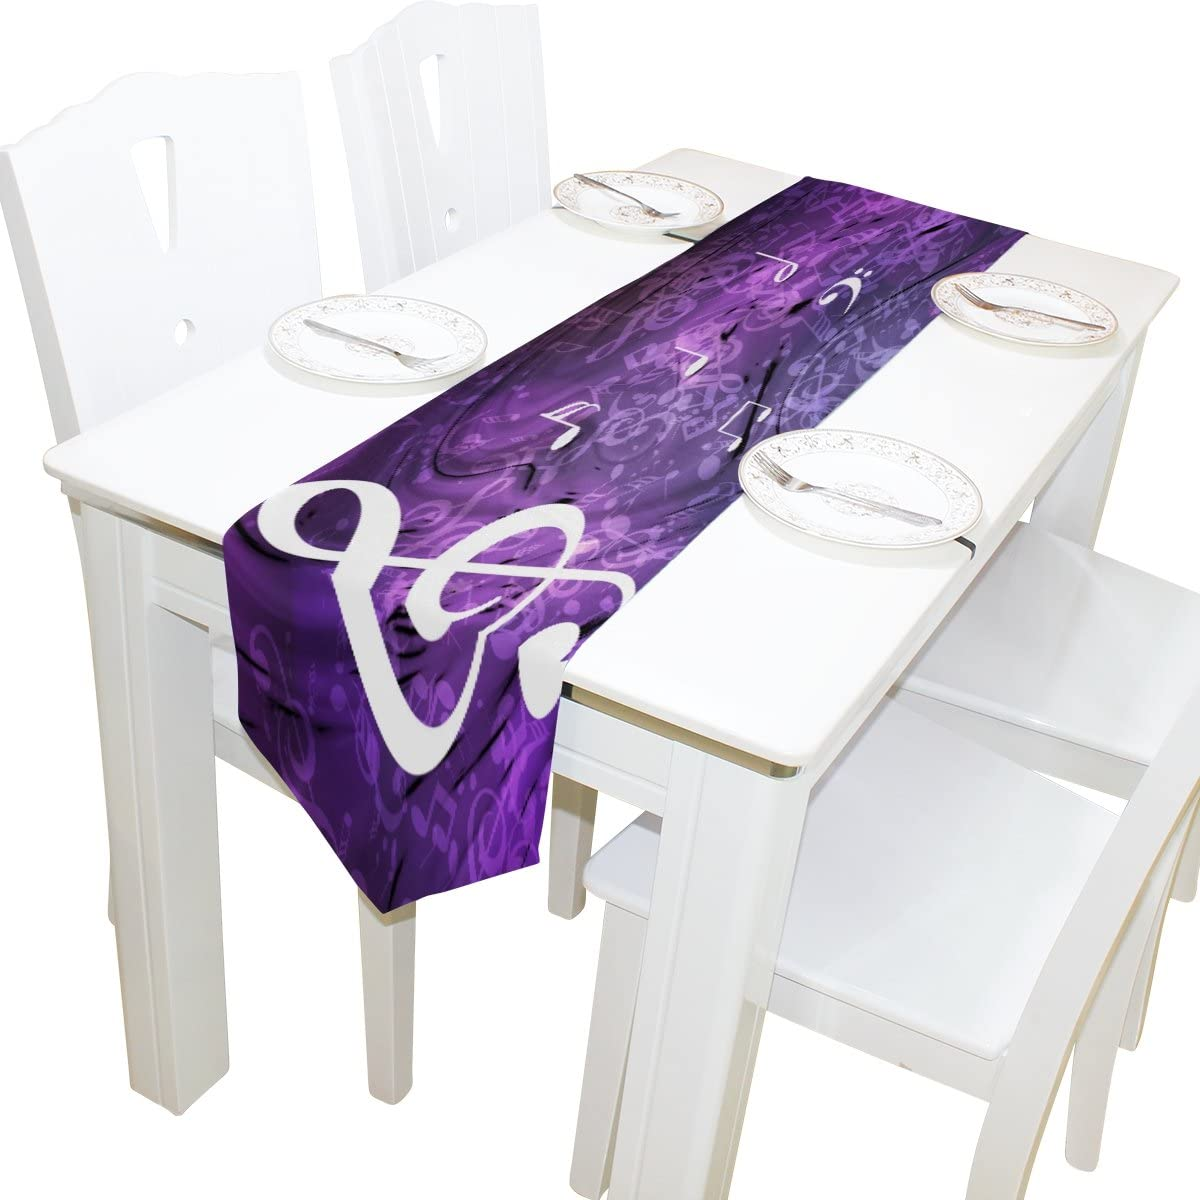 Yochoice Table Runner Home Decor, Stylish White Purple Musical Notes Table Cloth Runner Coffee Mat for Wedding Party Banquet Decoration 13 x 90 inches